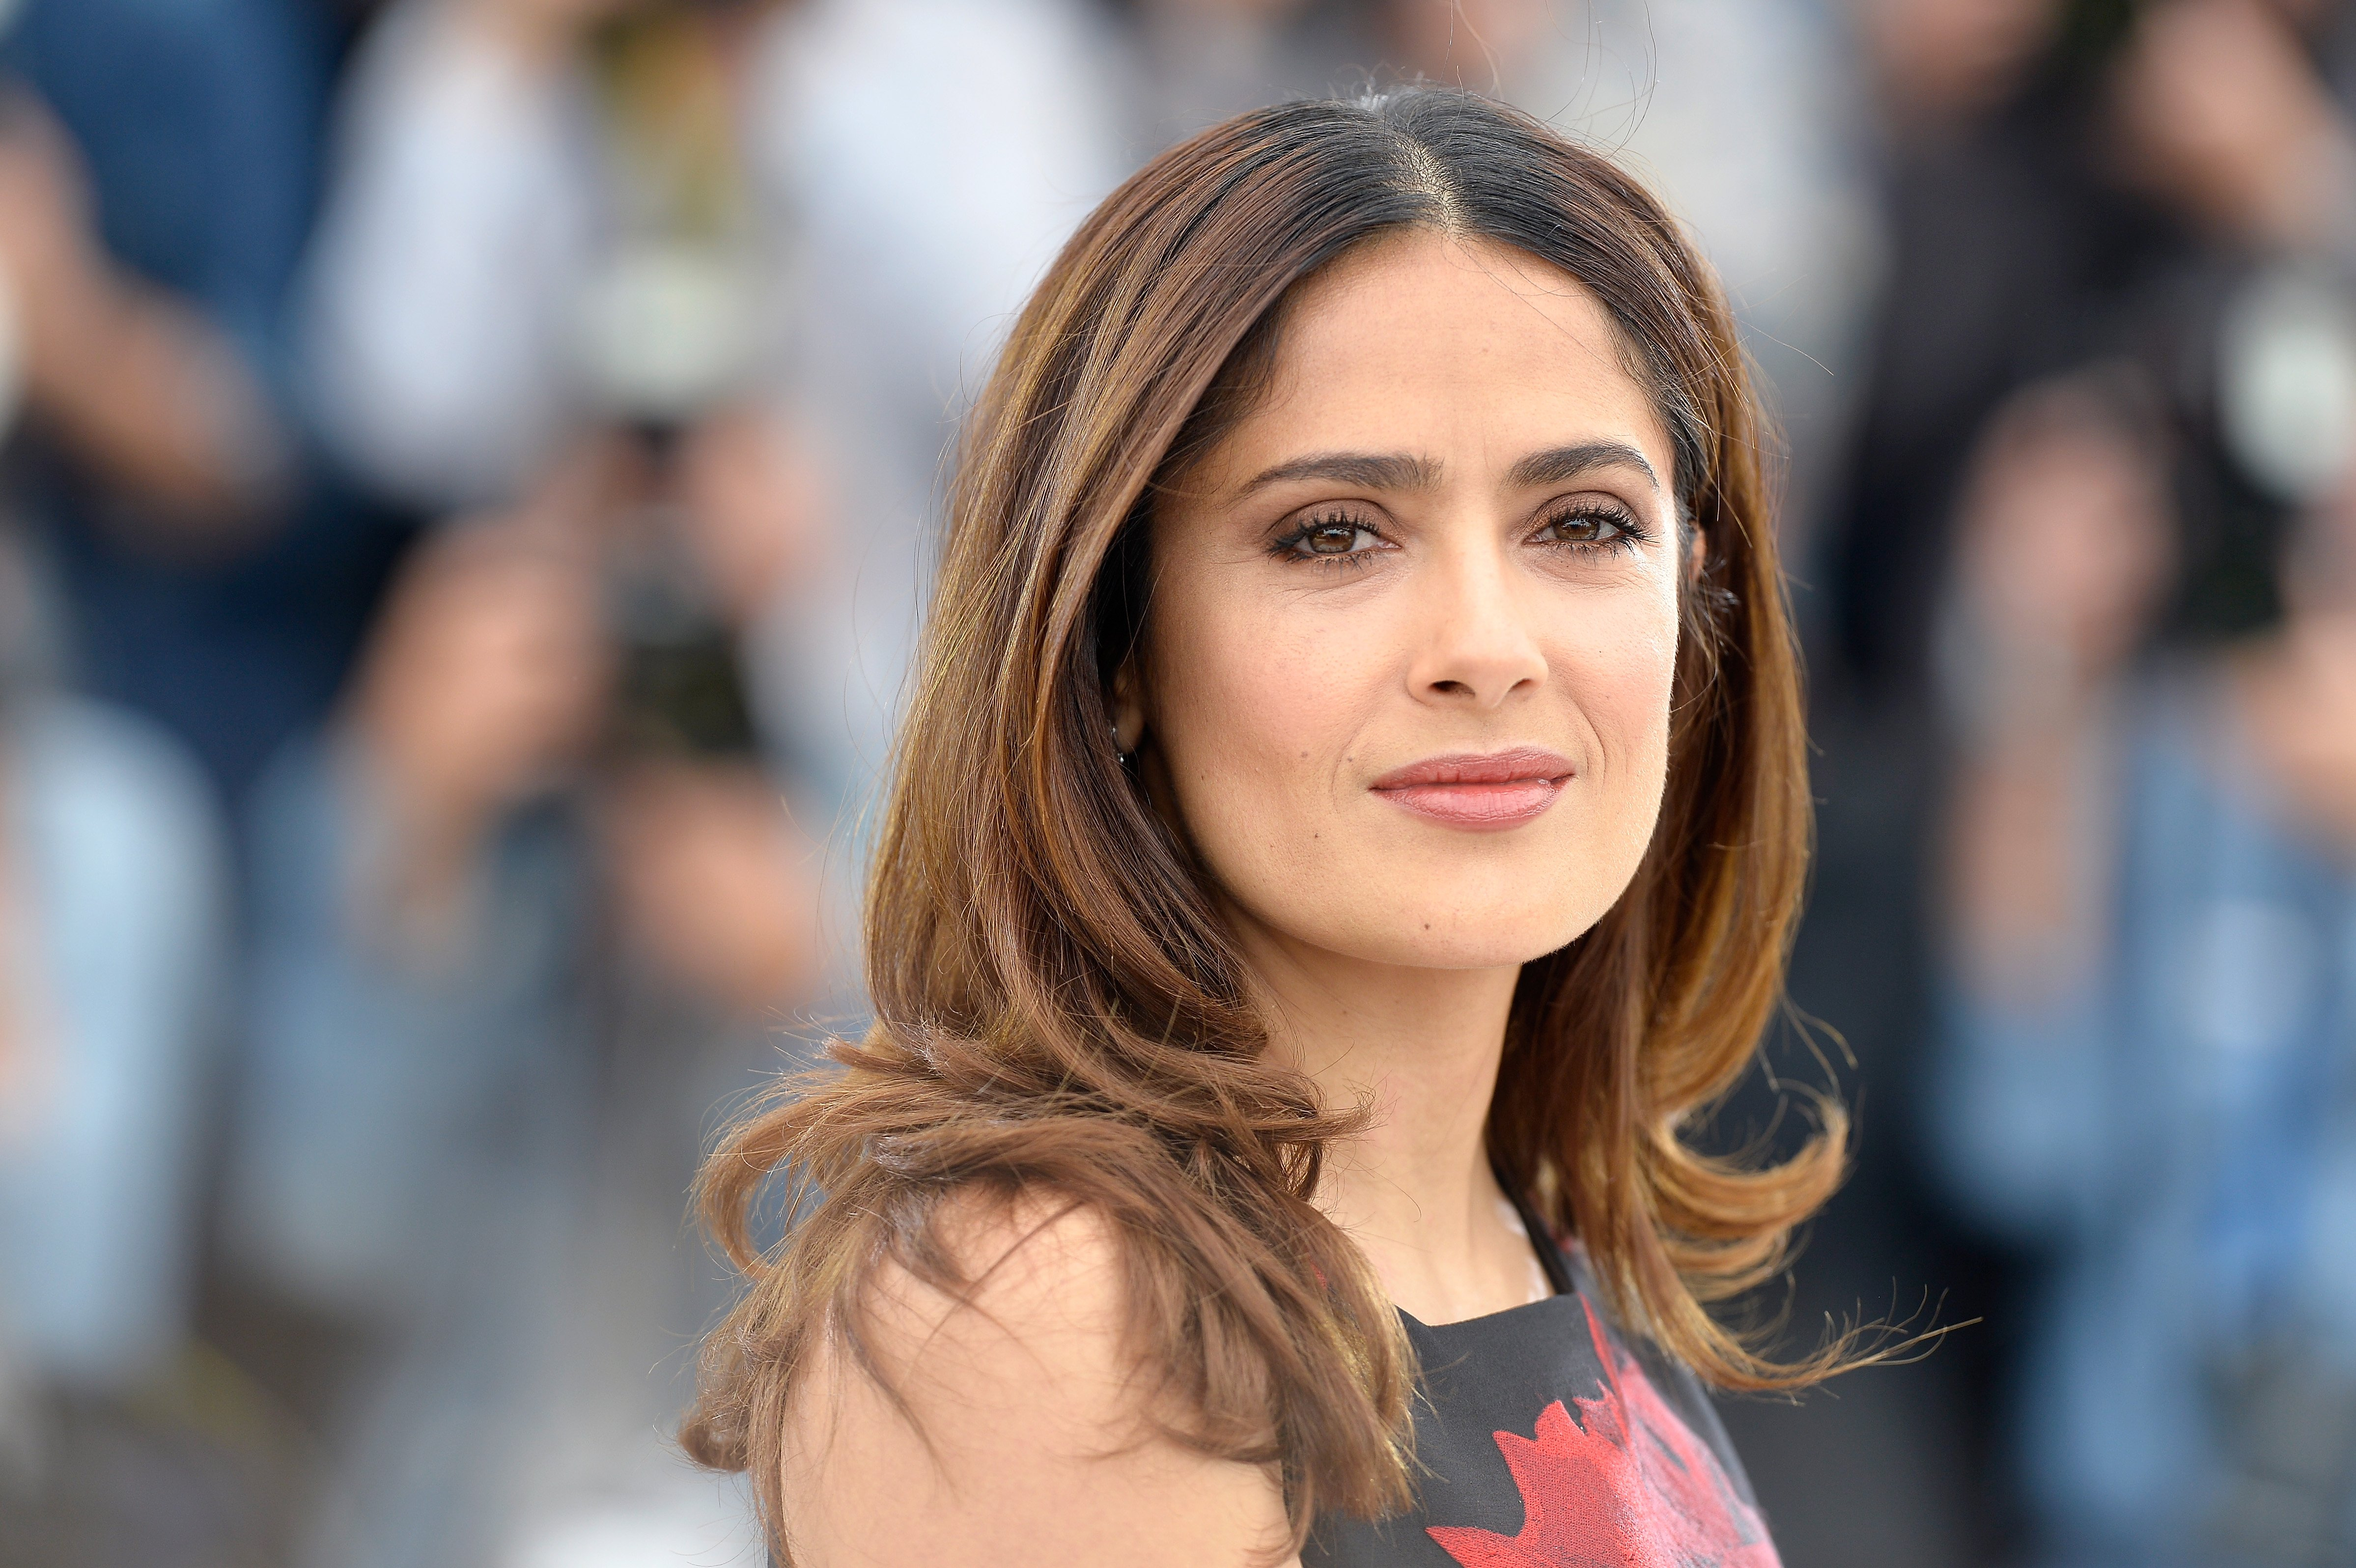 """Salma Hayek pictured at a photocall for """"Tale of Tales"""" during the 68th annual Cannes Film Festival, 2015, Cannes, France. 